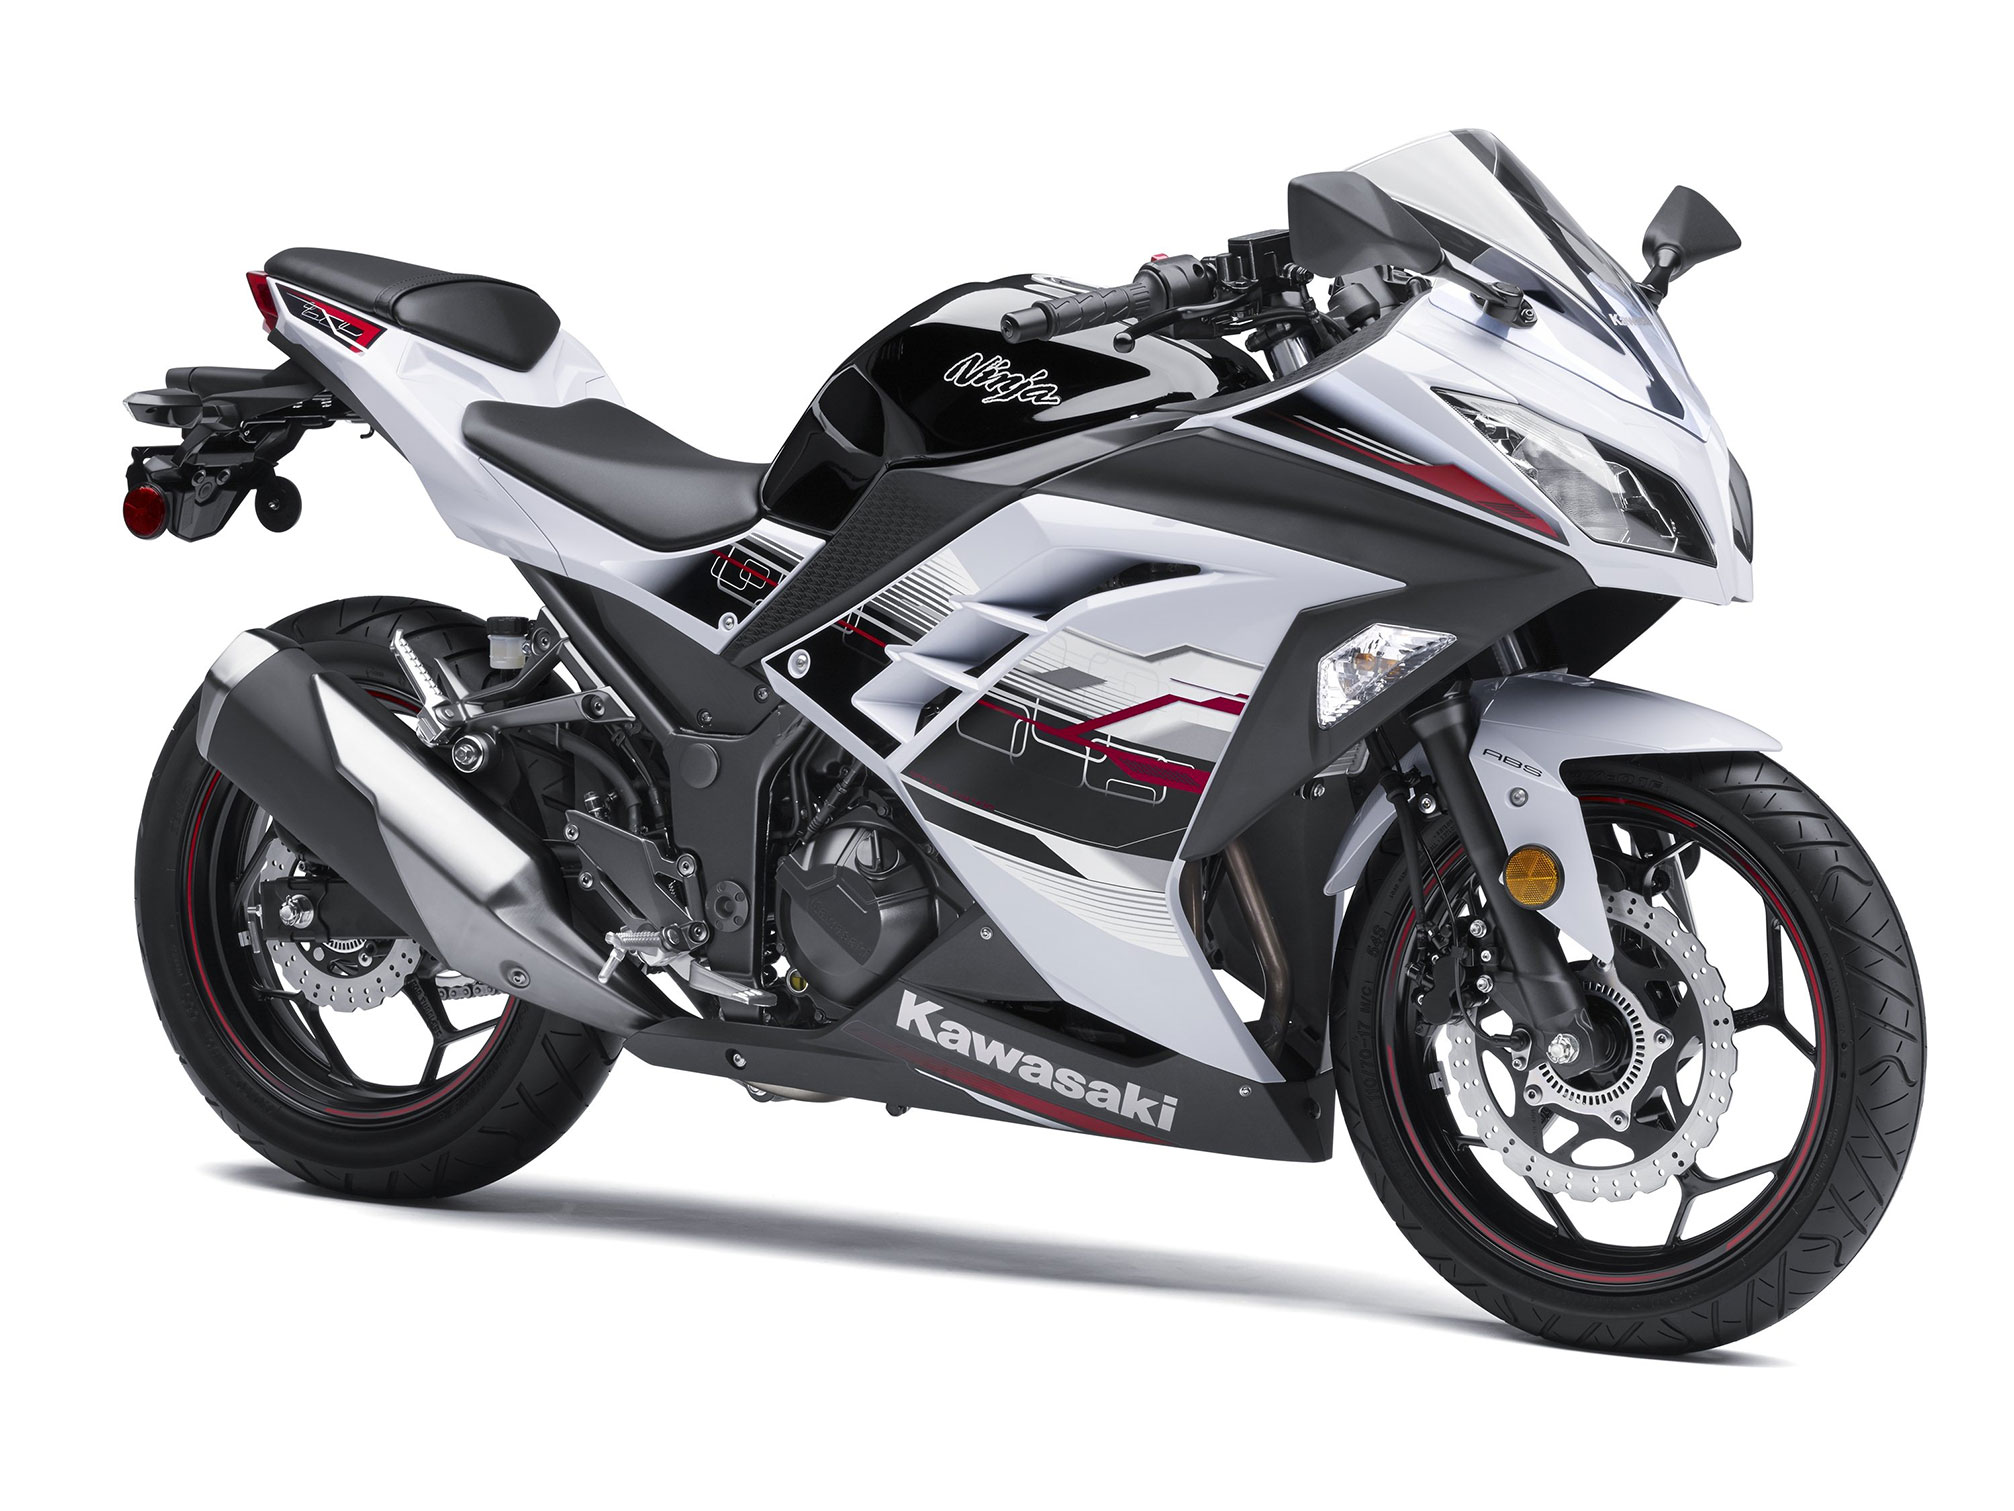 2014 kawasaki ninja 300 review. Black Bedroom Furniture Sets. Home Design Ideas